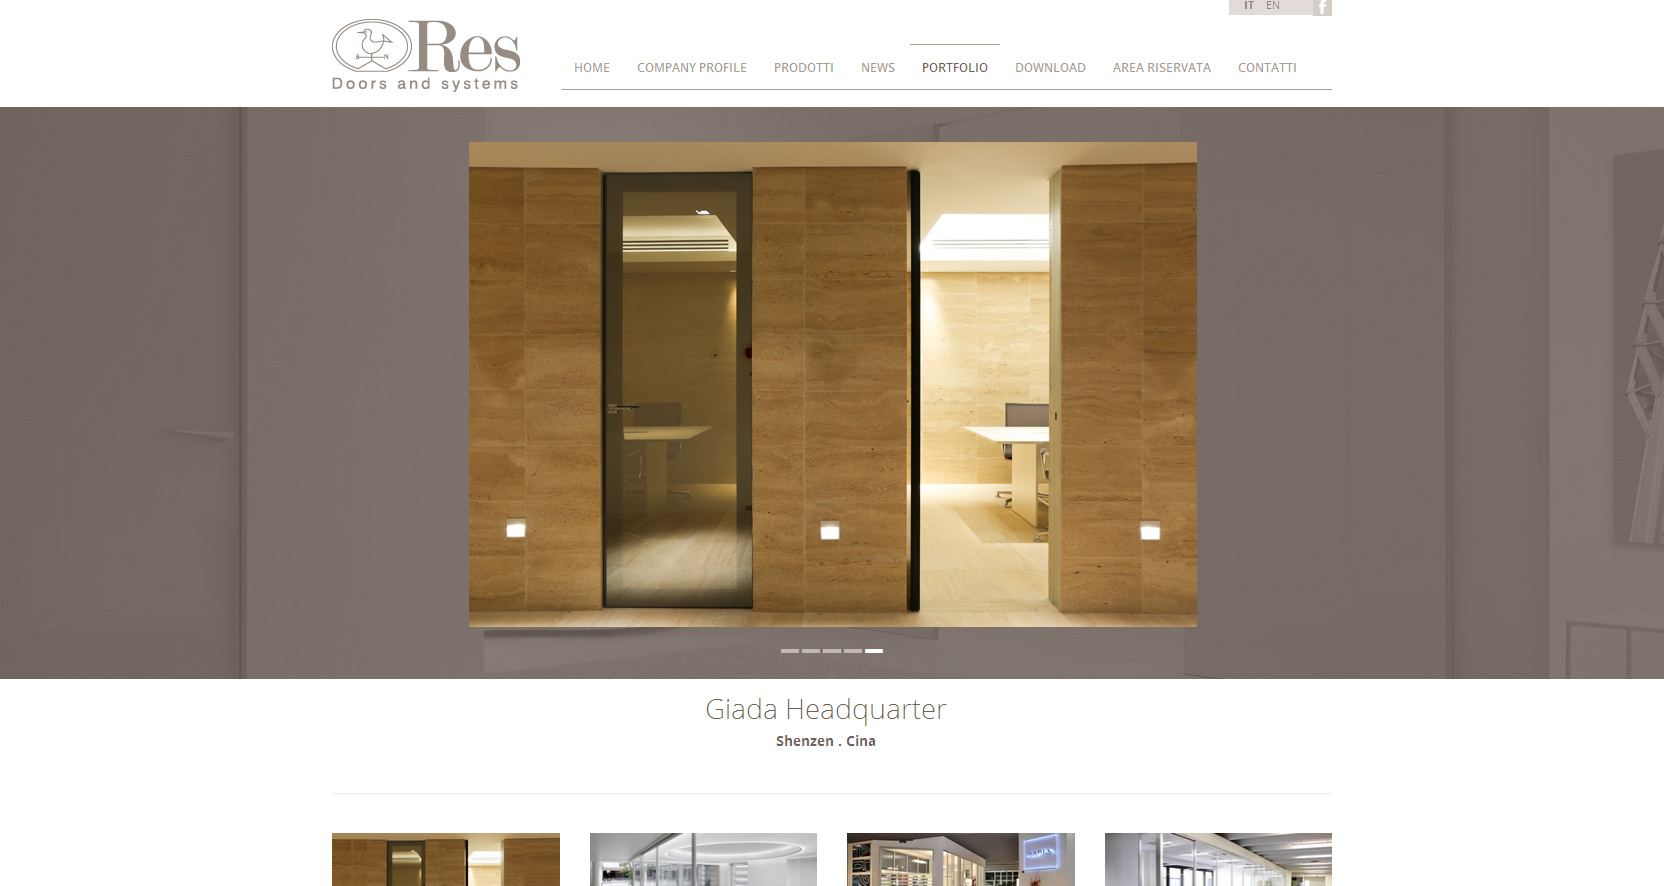 Date  sc 1 st  Massimo Cavana & website for Res door and systems by Massimo Cavana